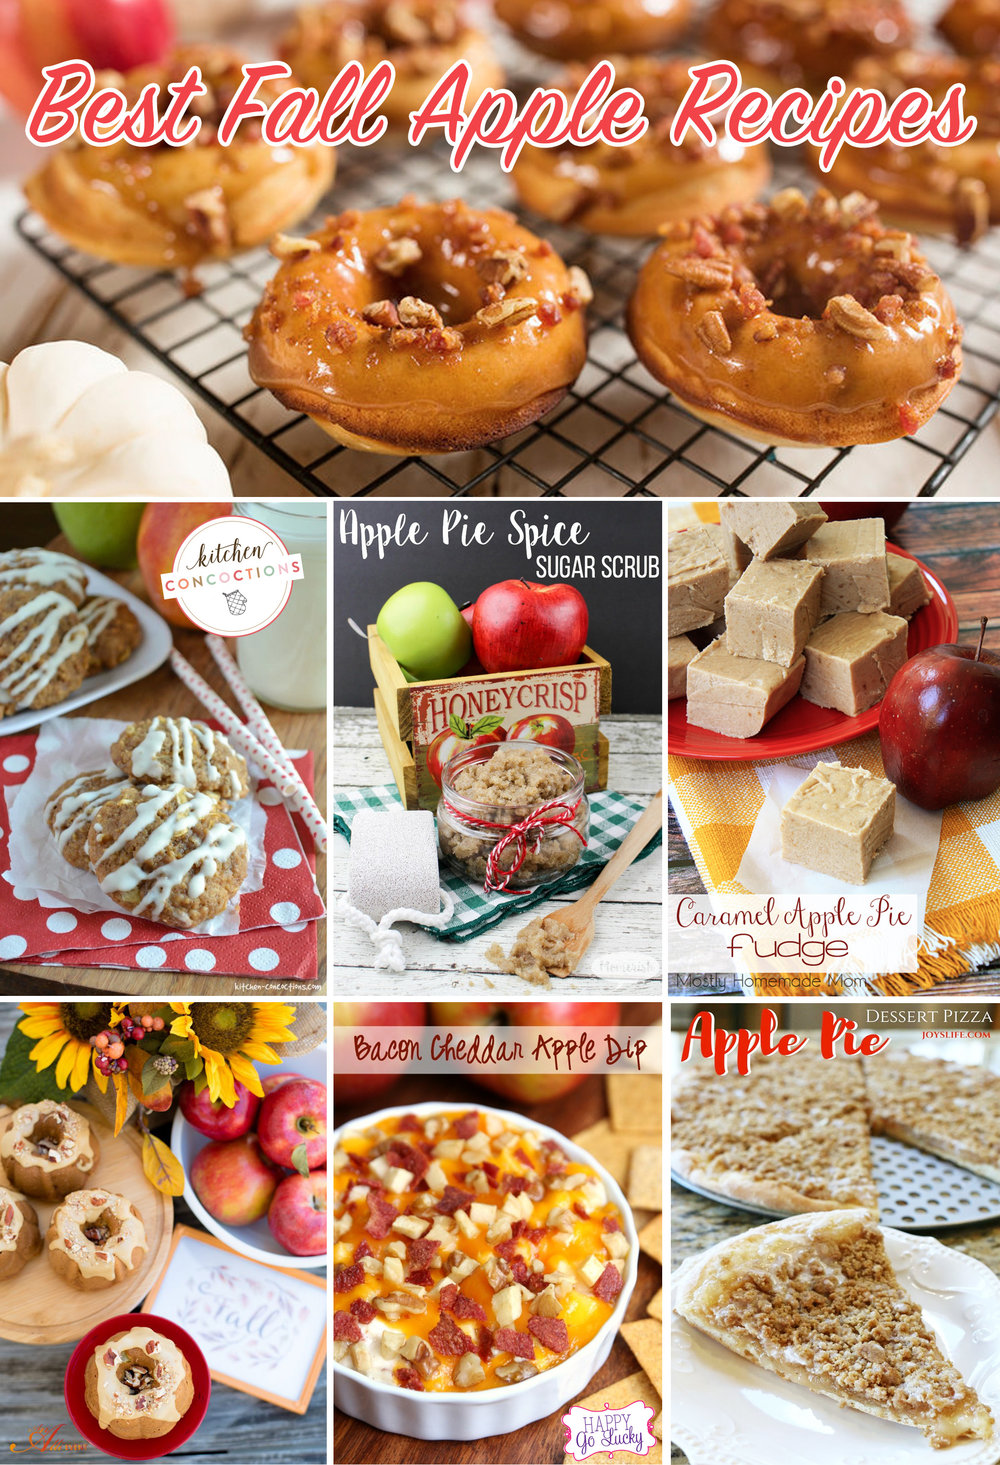 #SoFabSeasons - Best Fall Apple Recipes